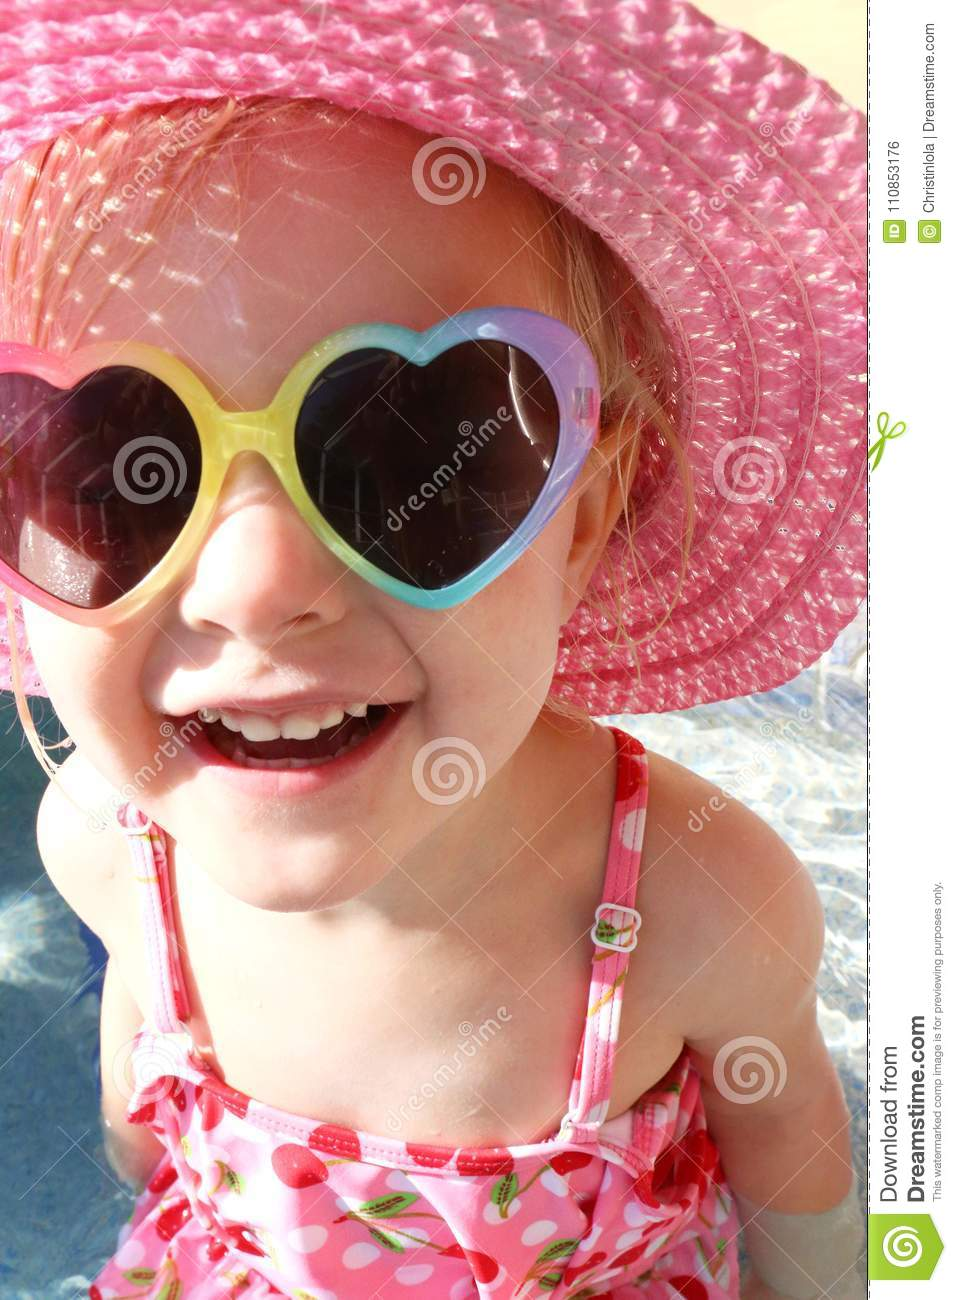 Happy Little Girl Laughing in Swimsuit, Sun Hat and Sunglasses